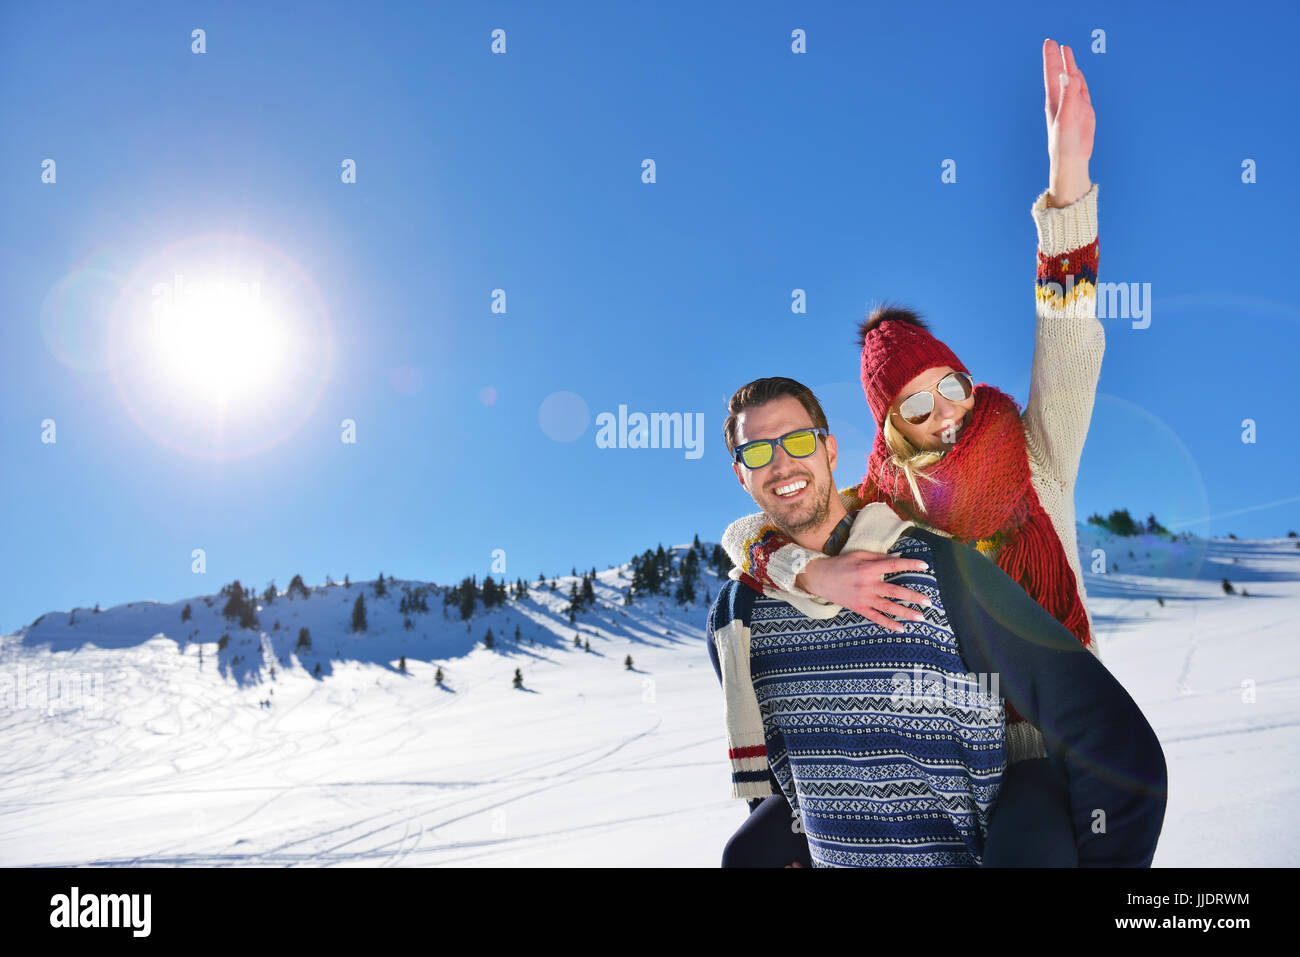 Loving couple playing together in snow outdoor. Stock Photo